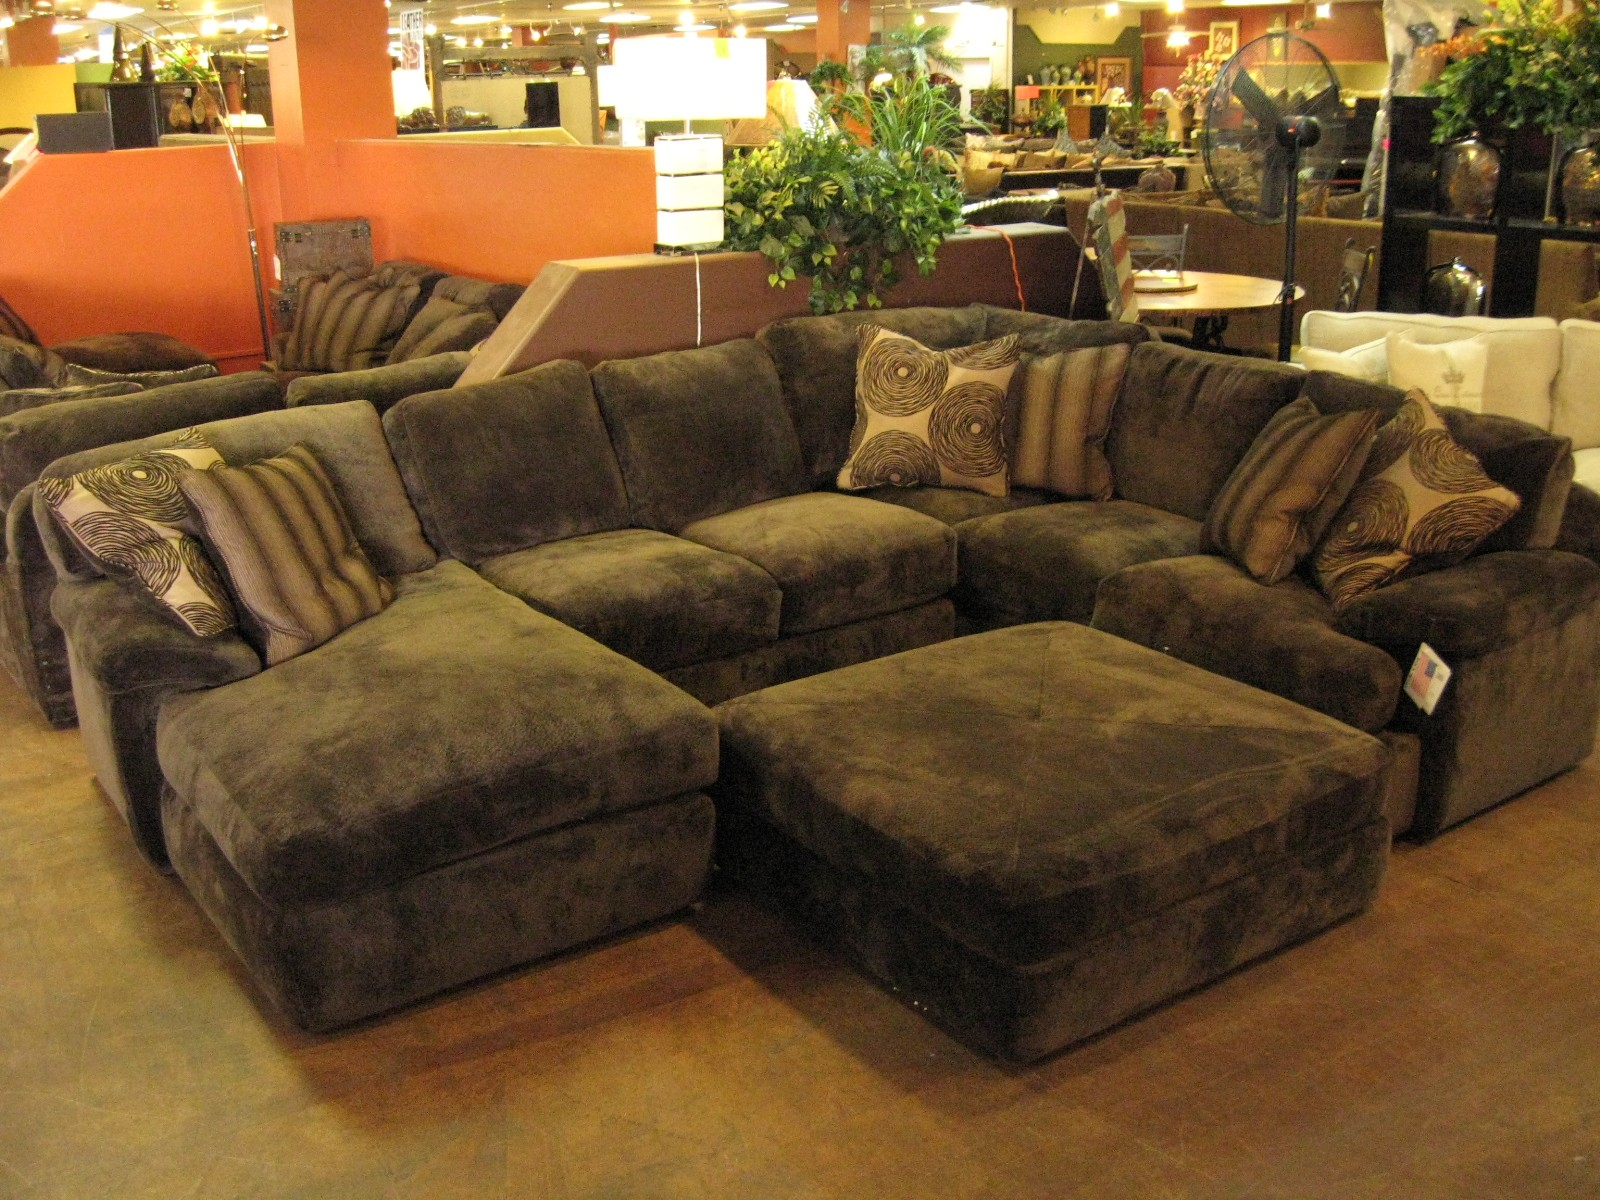 Furniture Tufted Sectional Sofa Sectional Sofas